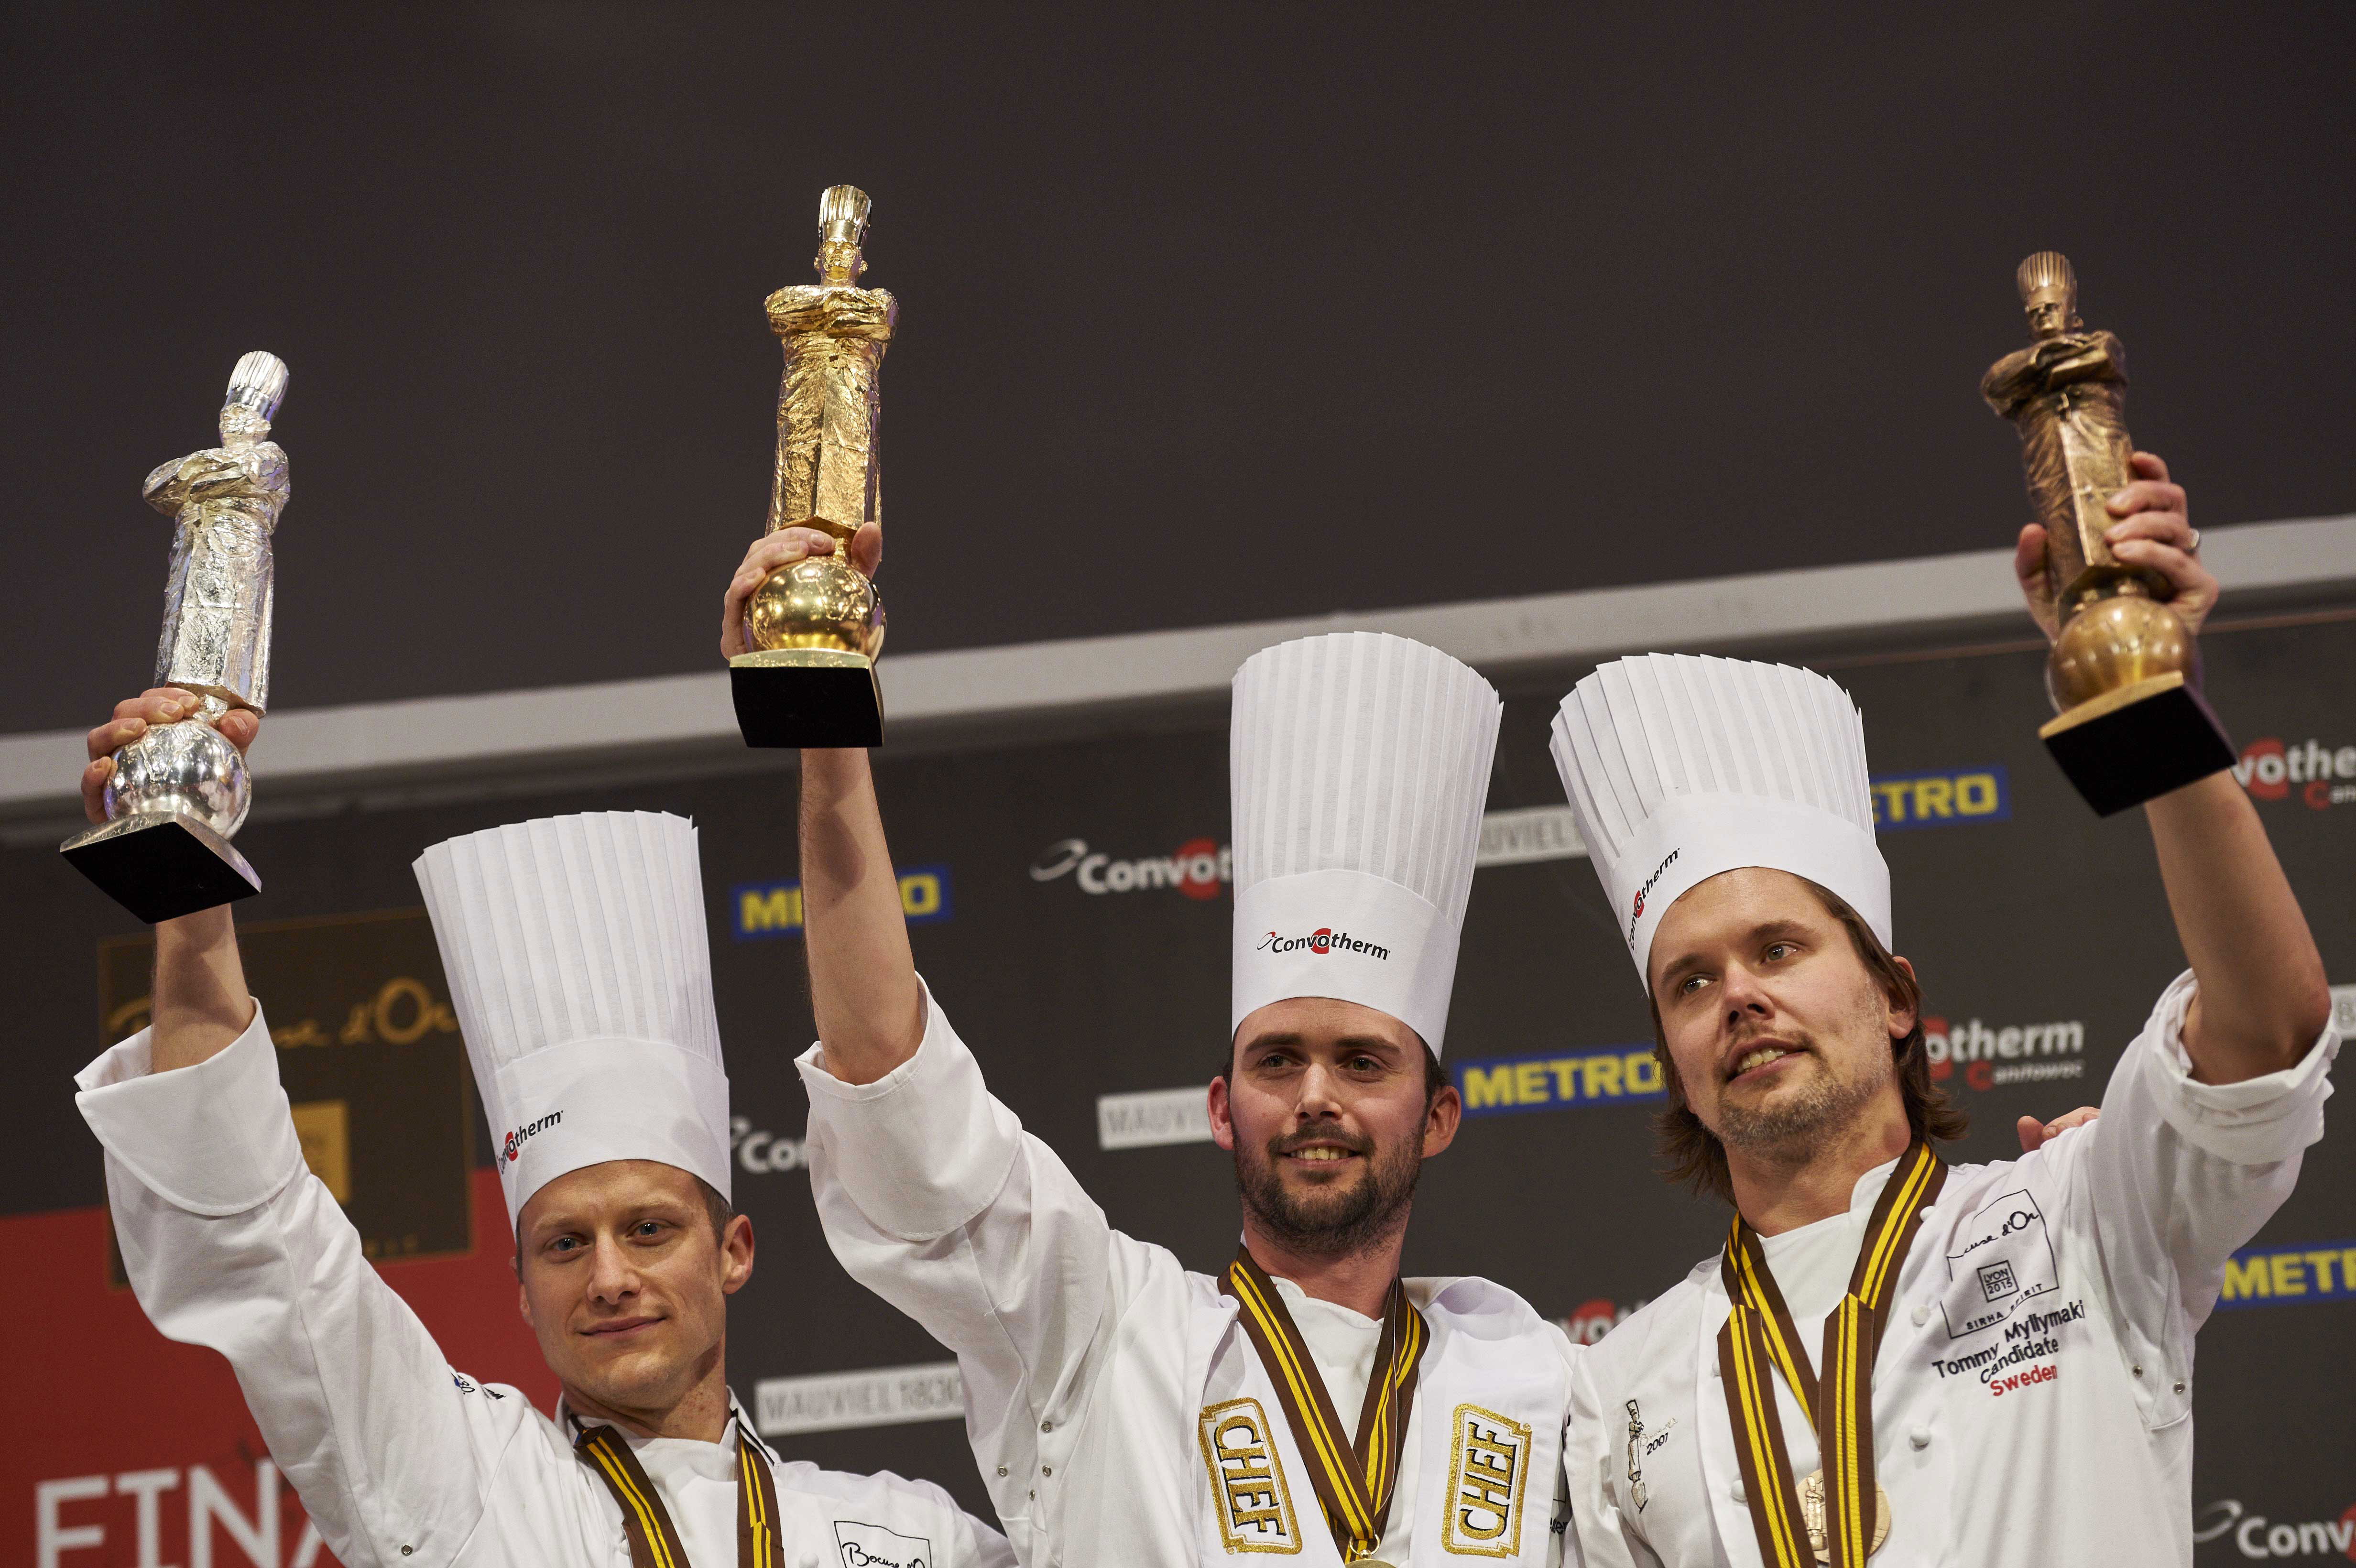 Podium2015 Bocuse d'or